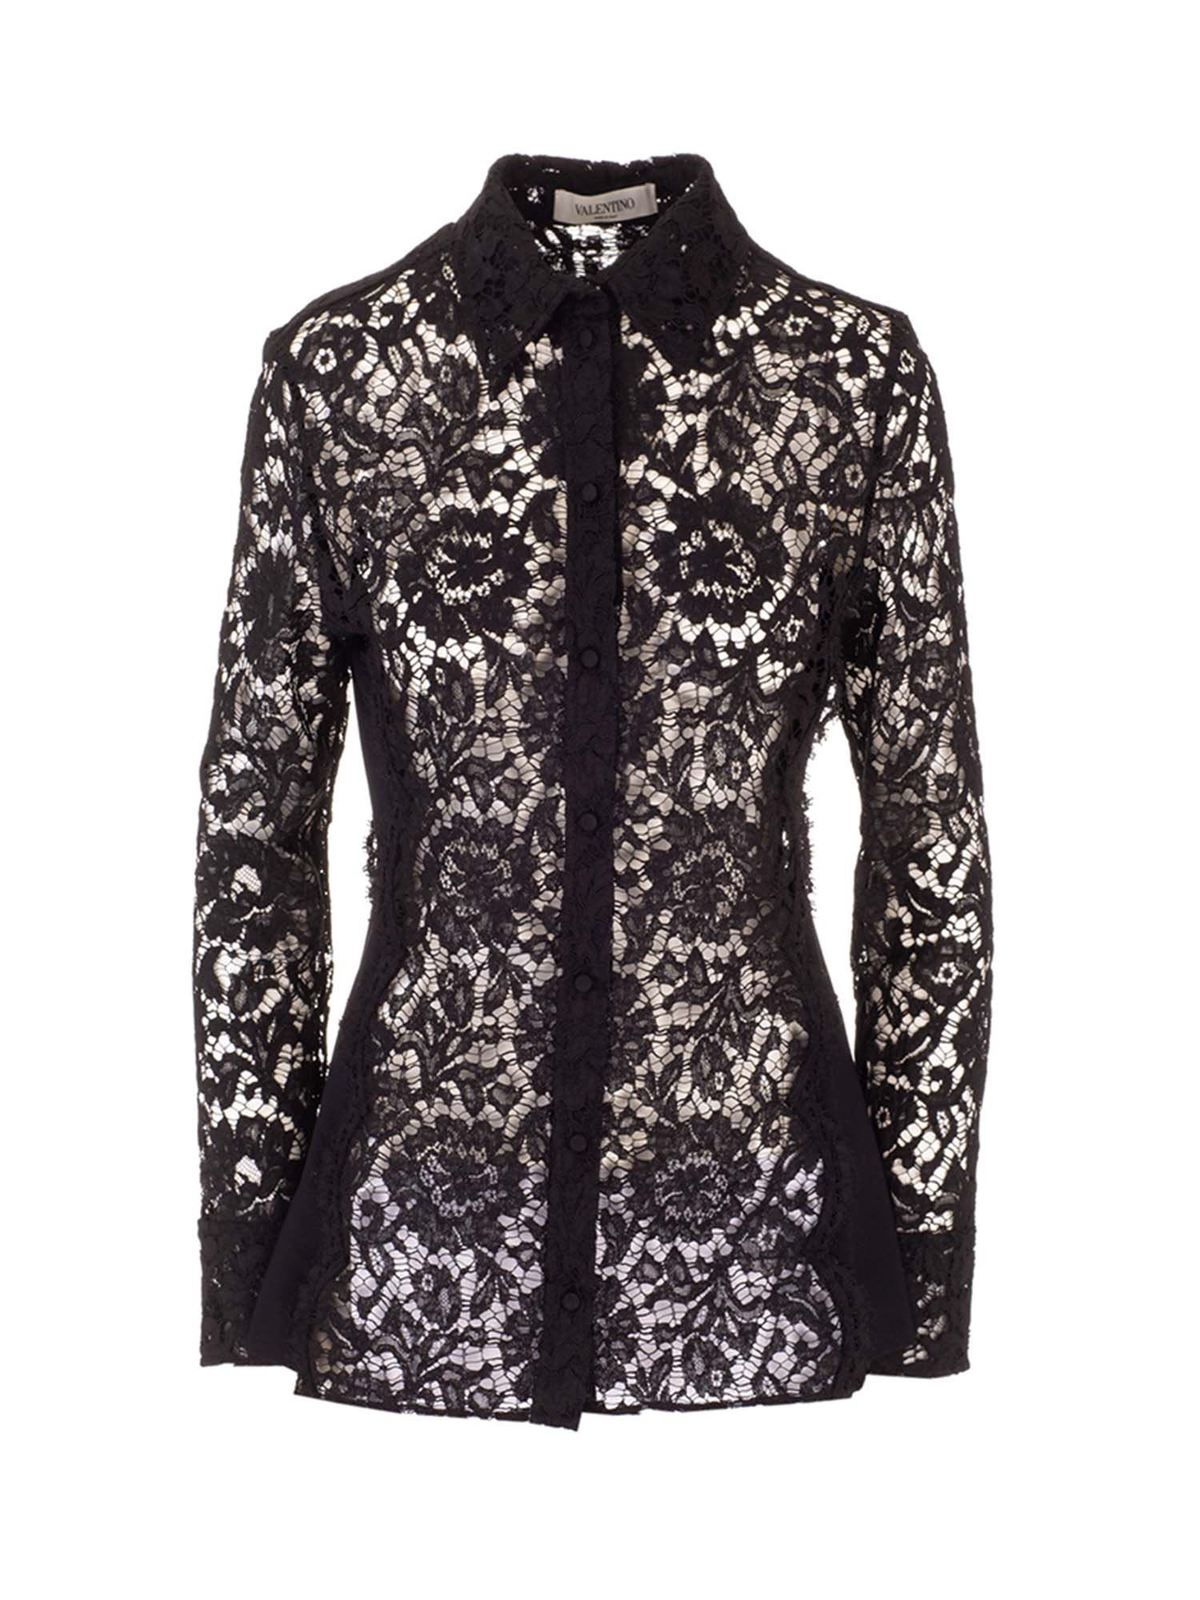 Valentino LACE SHIRT IN BLACK